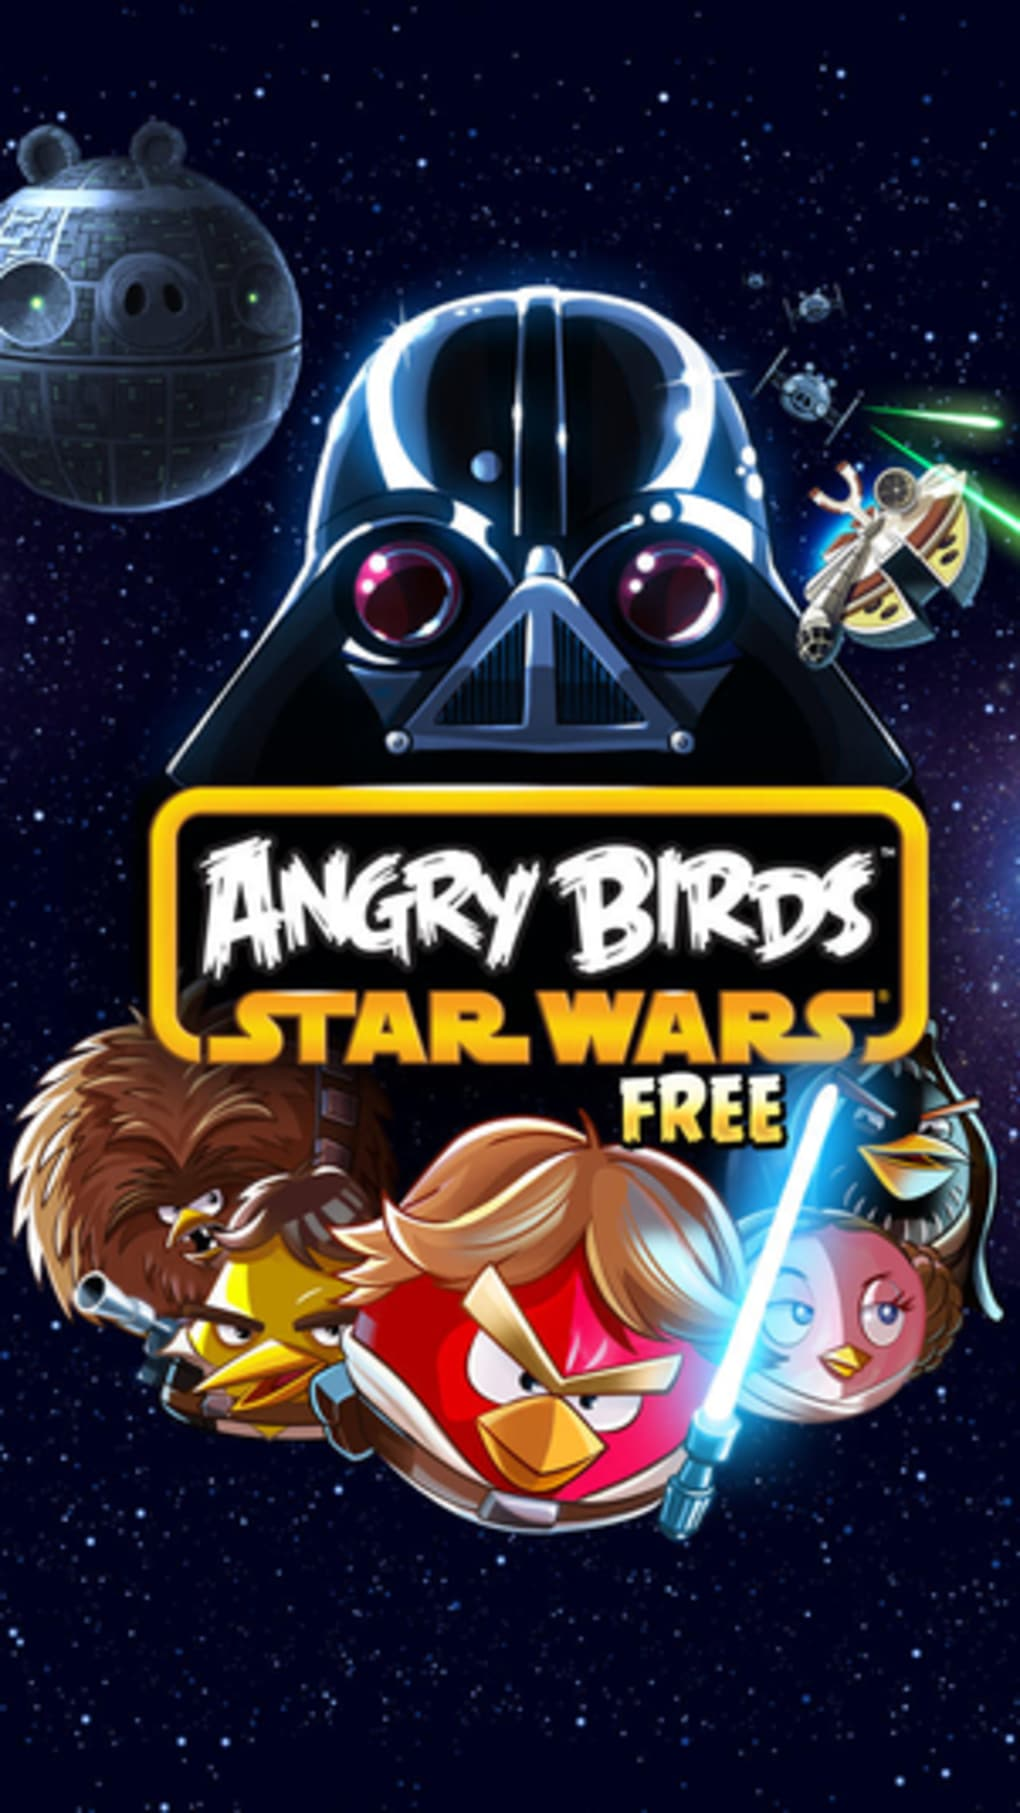 Angry birds star wars for iphone download - Angry birds star wars 7 ...